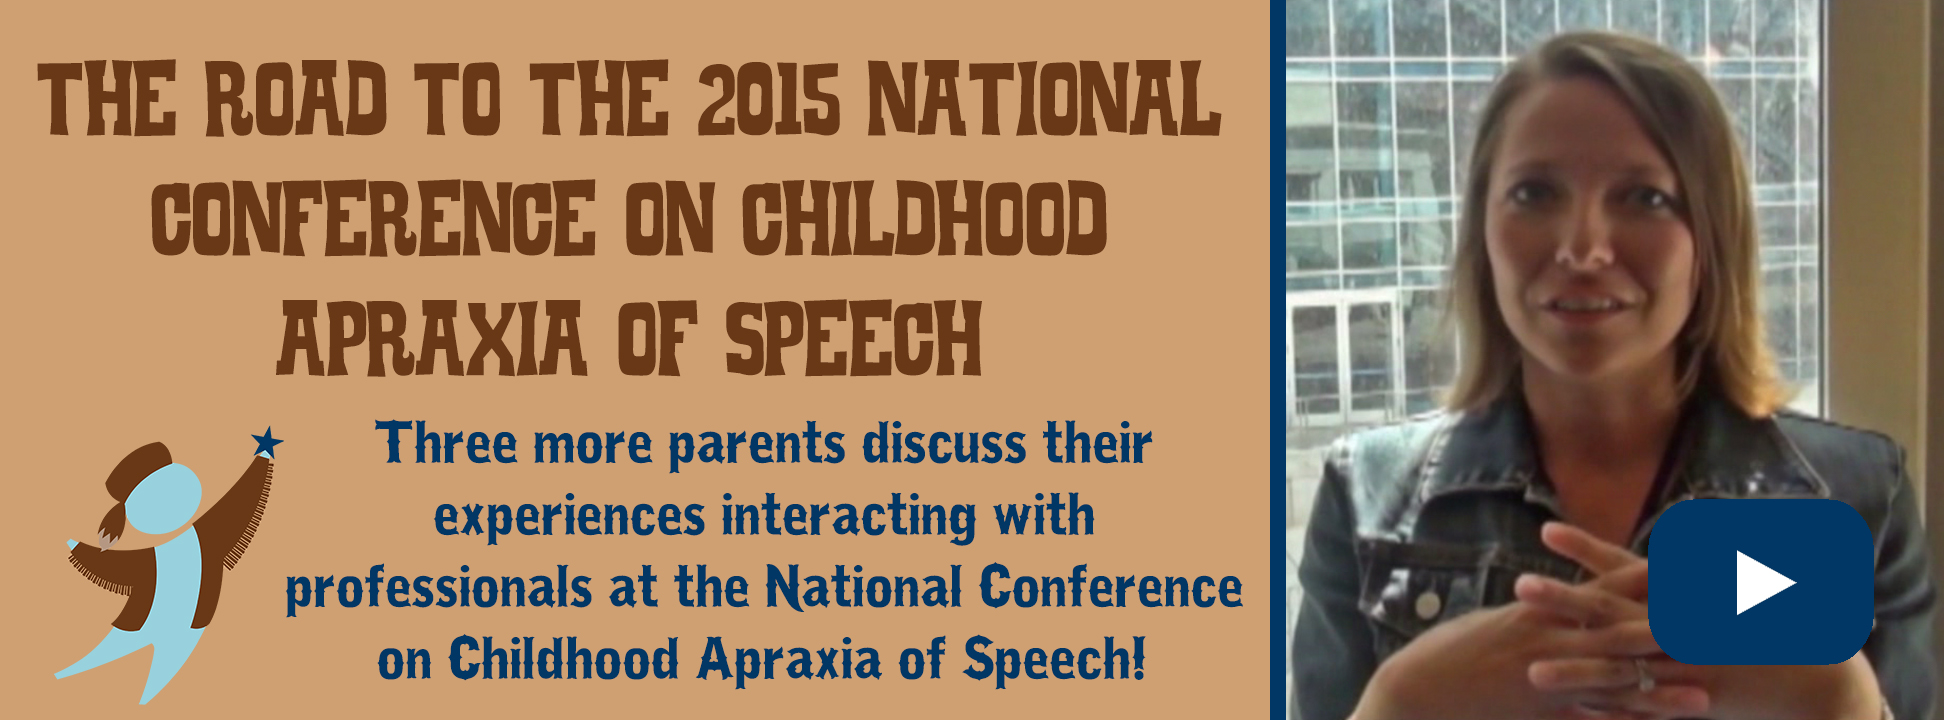 Road to the 2015 Conference - Email Graphic - Parent-SLP 2.2